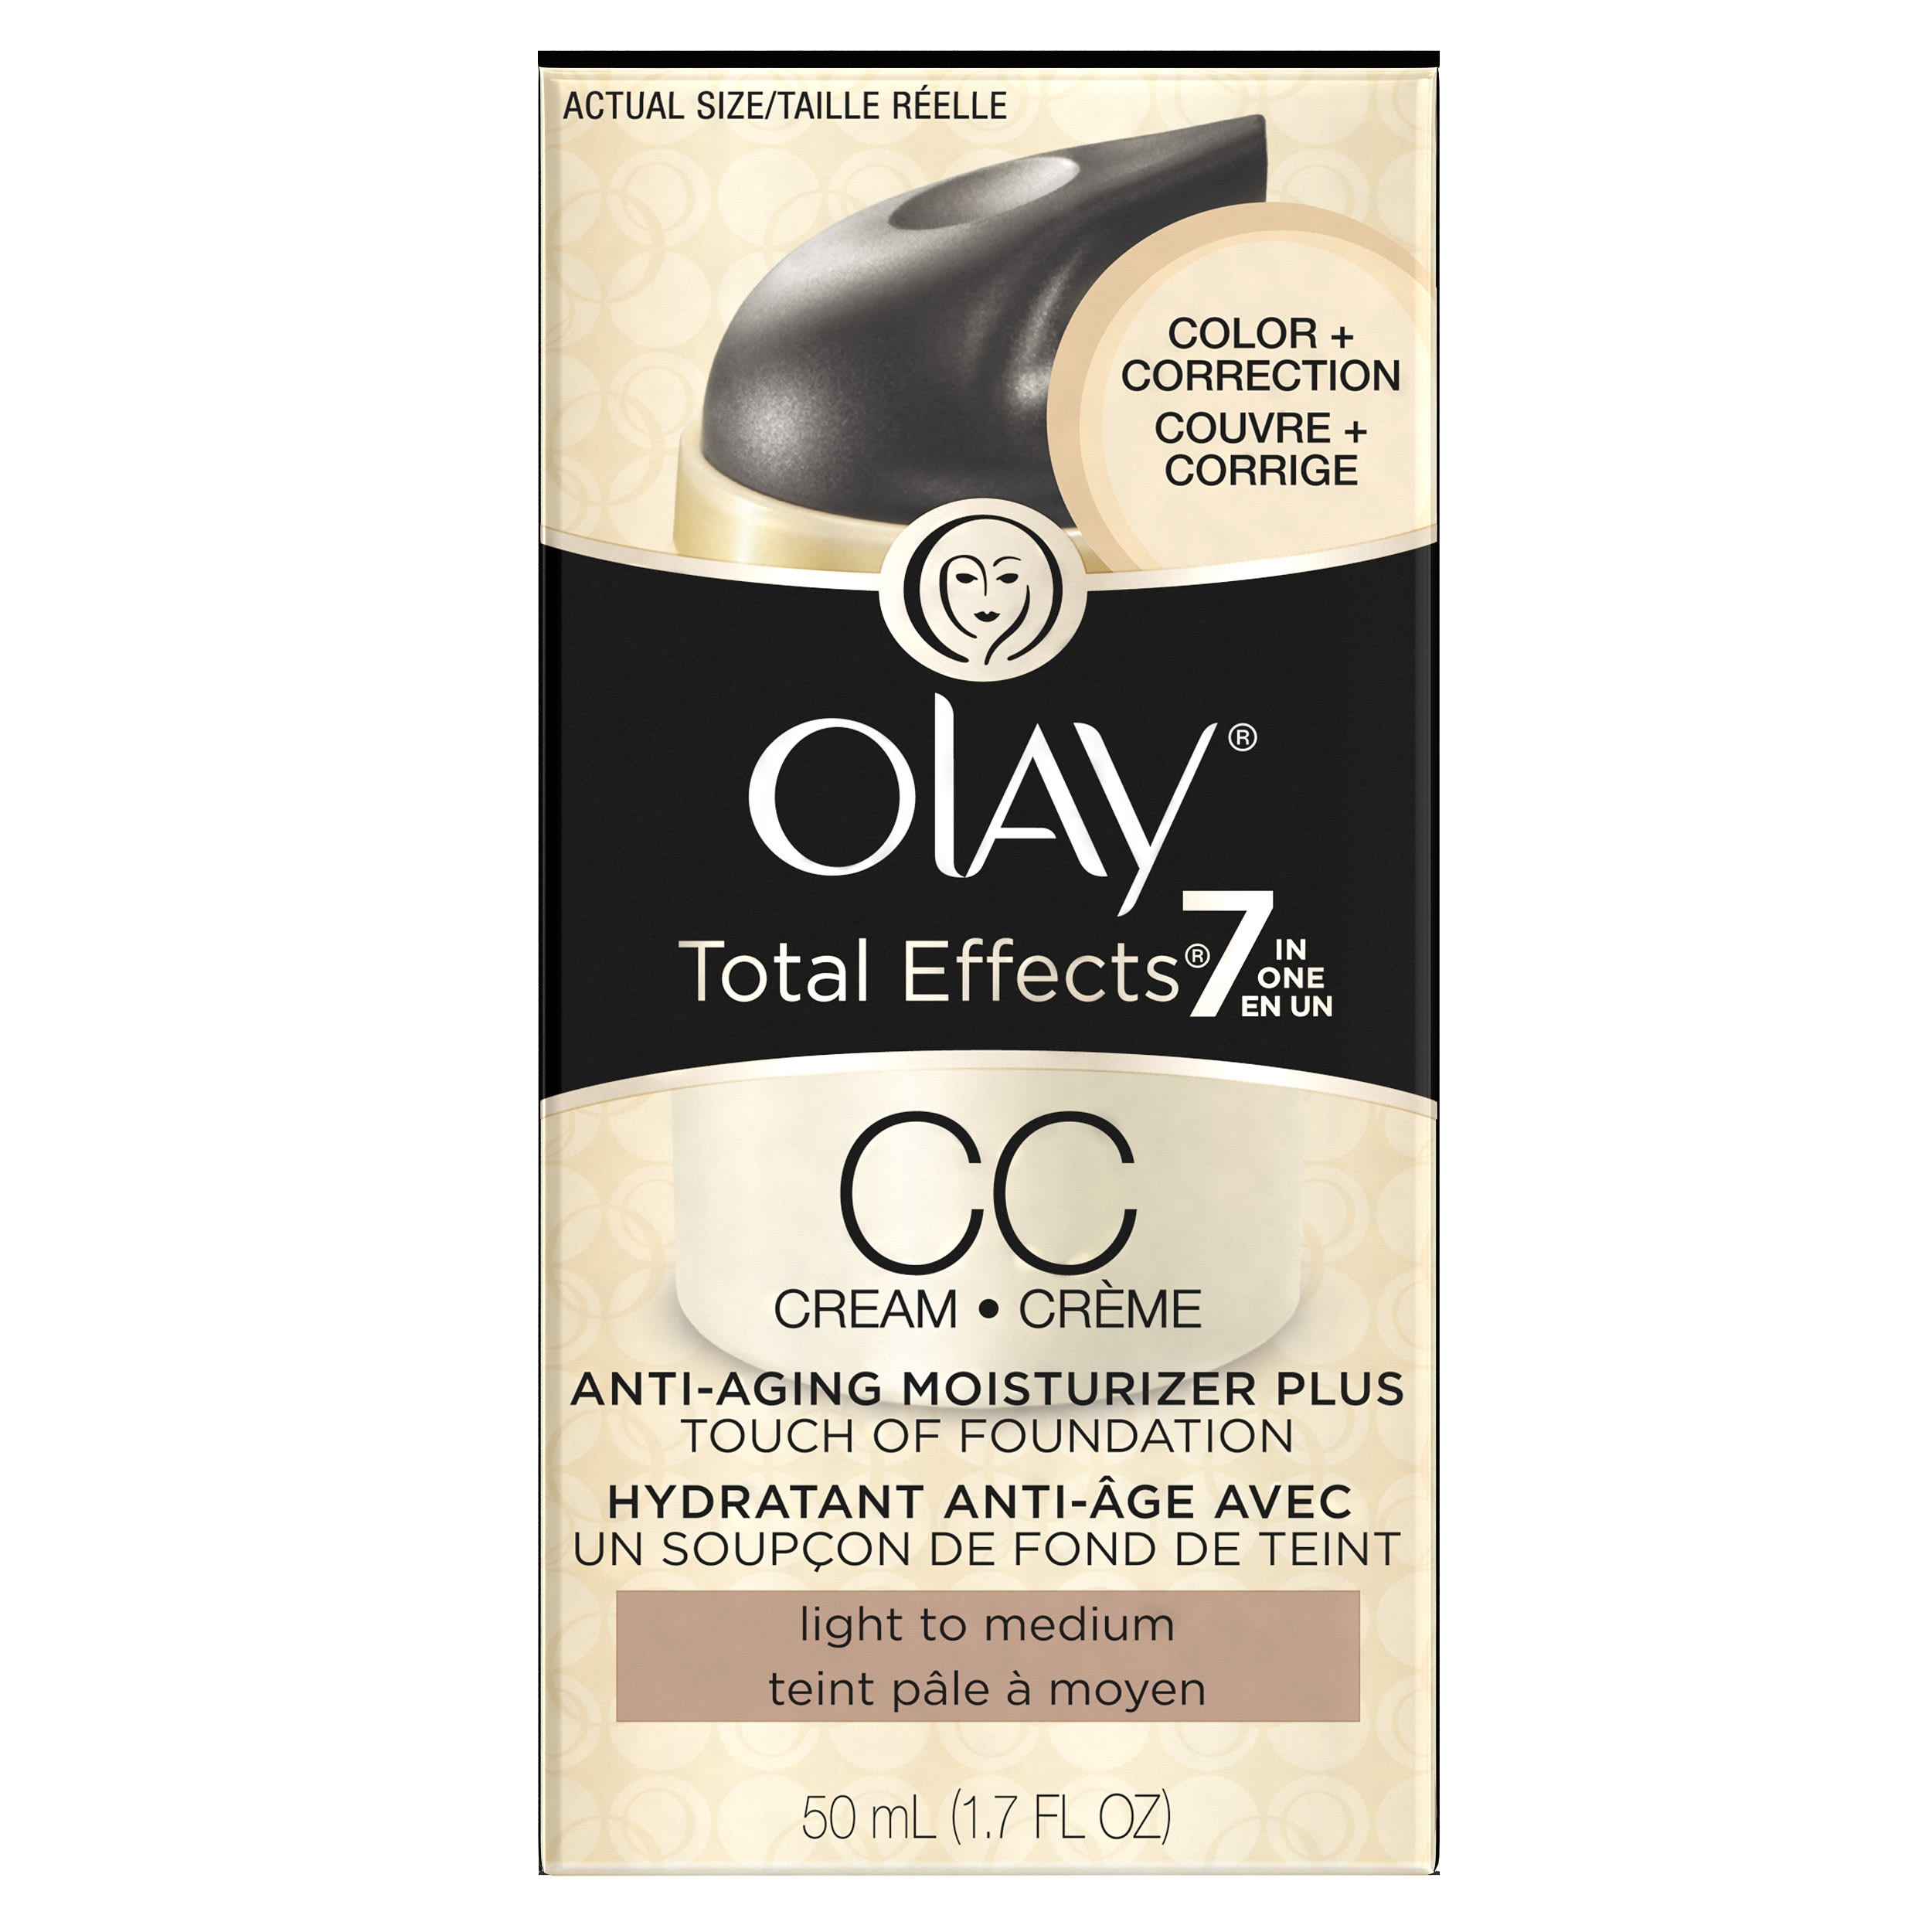 Olay CC Cream Total Effects Daily Moisturizer Touch of Foundation